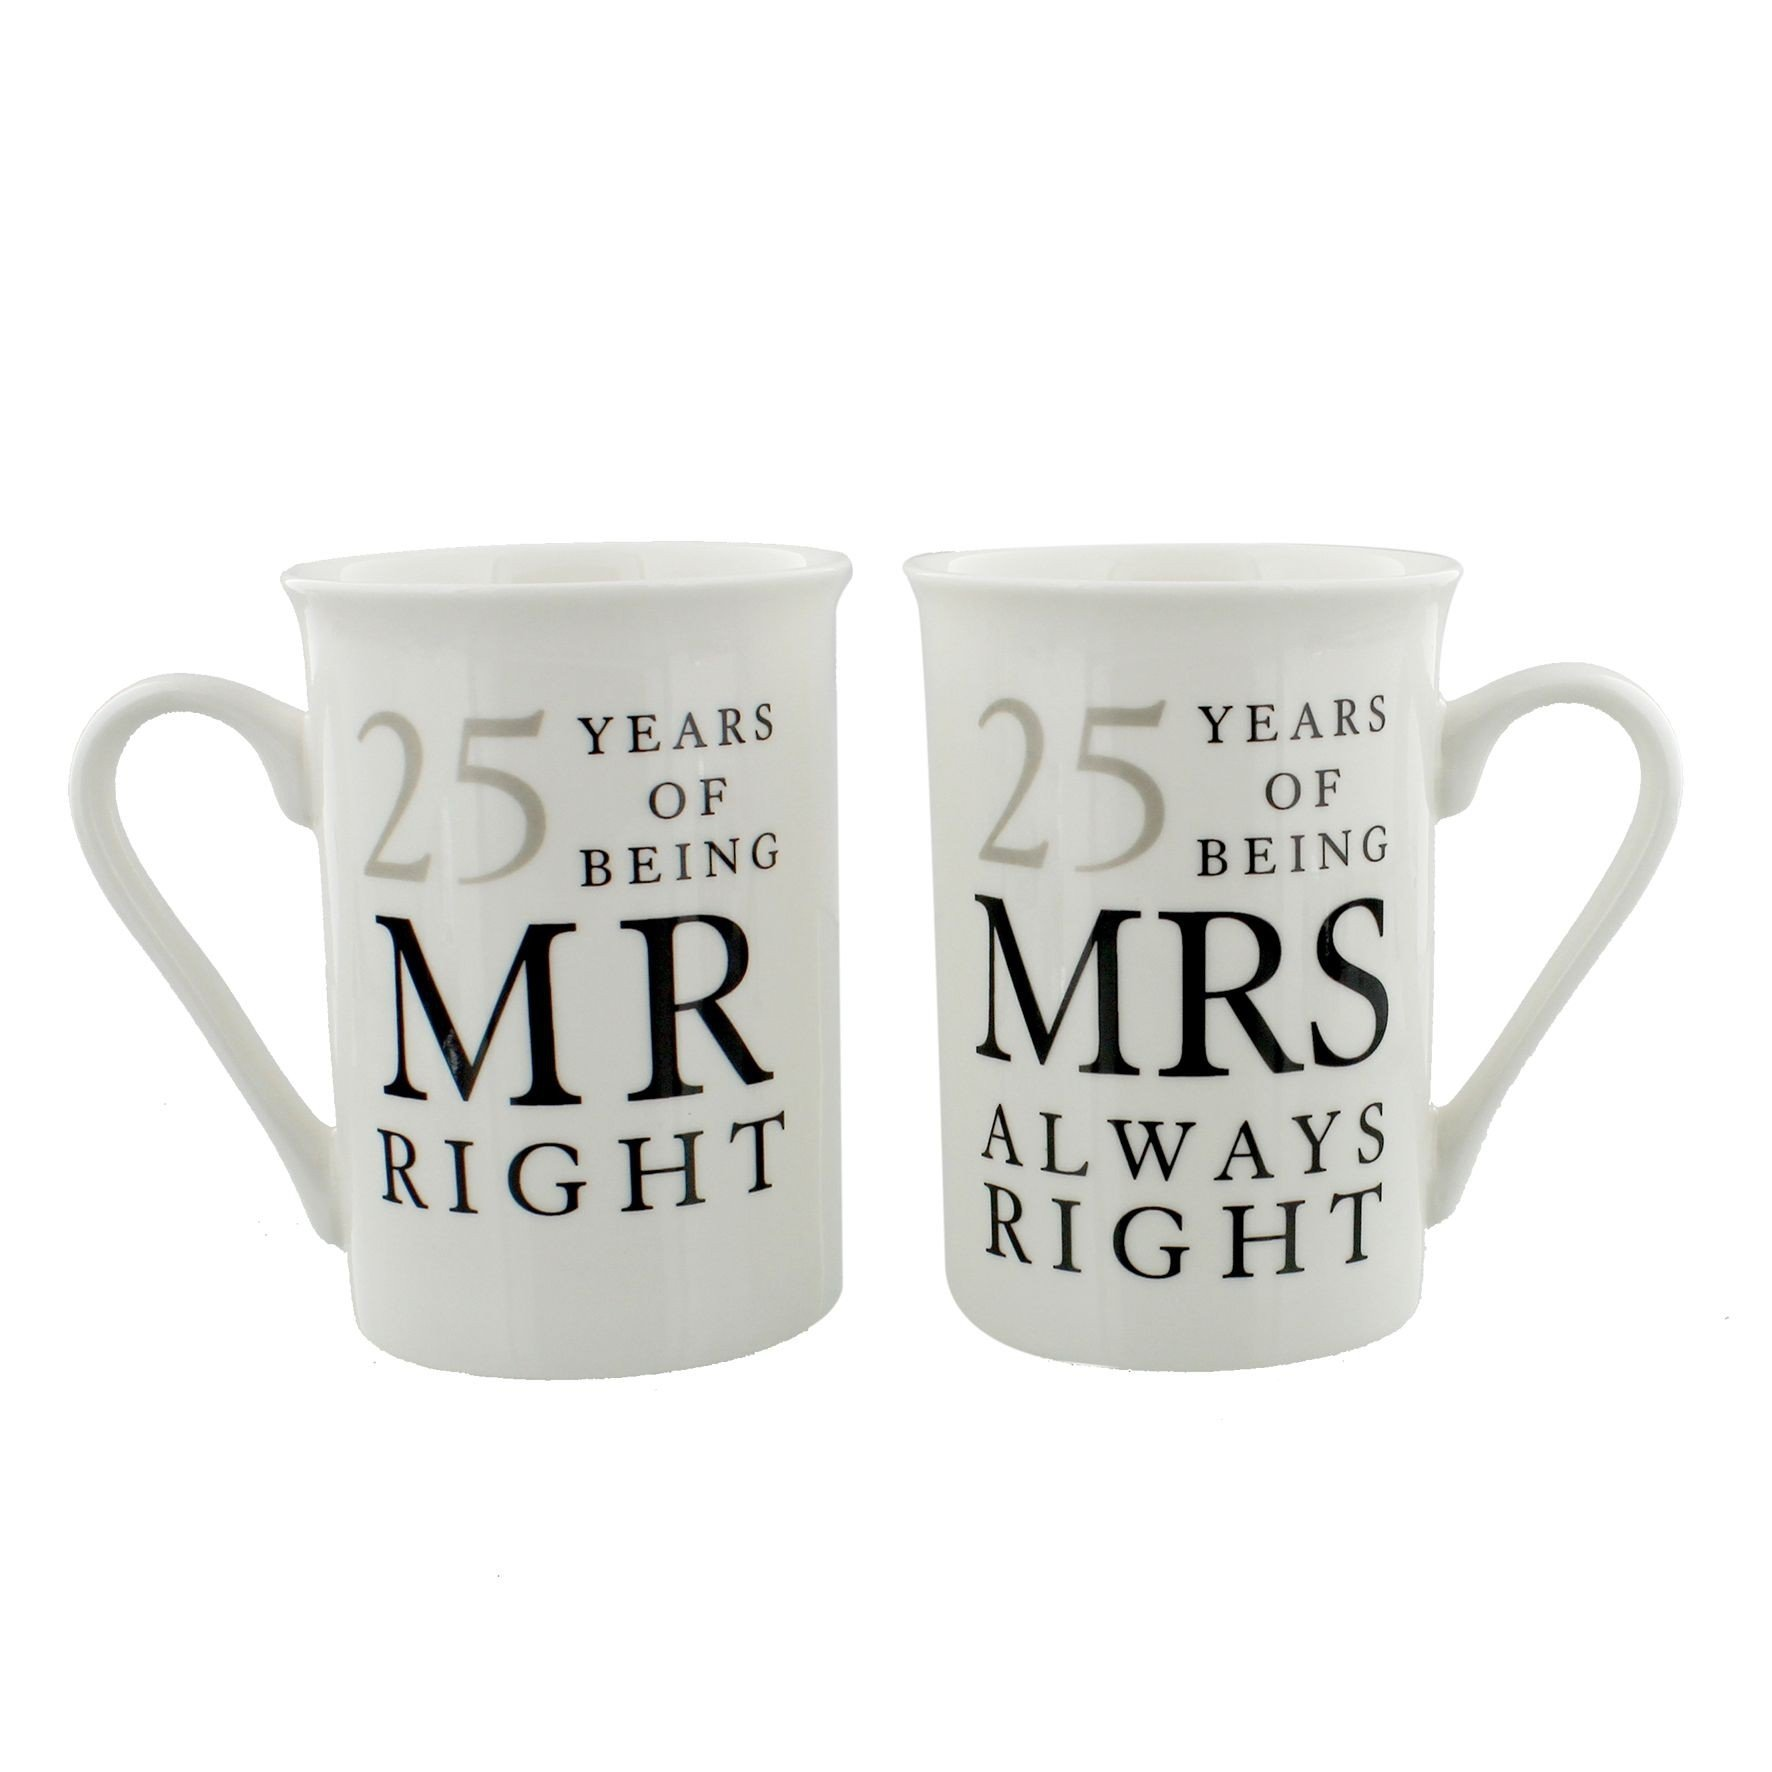 25 Unique Wedding Ideas To Get Inspire: 10 Lovely Gift Ideas For 25Th Wedding Anniversary 2020